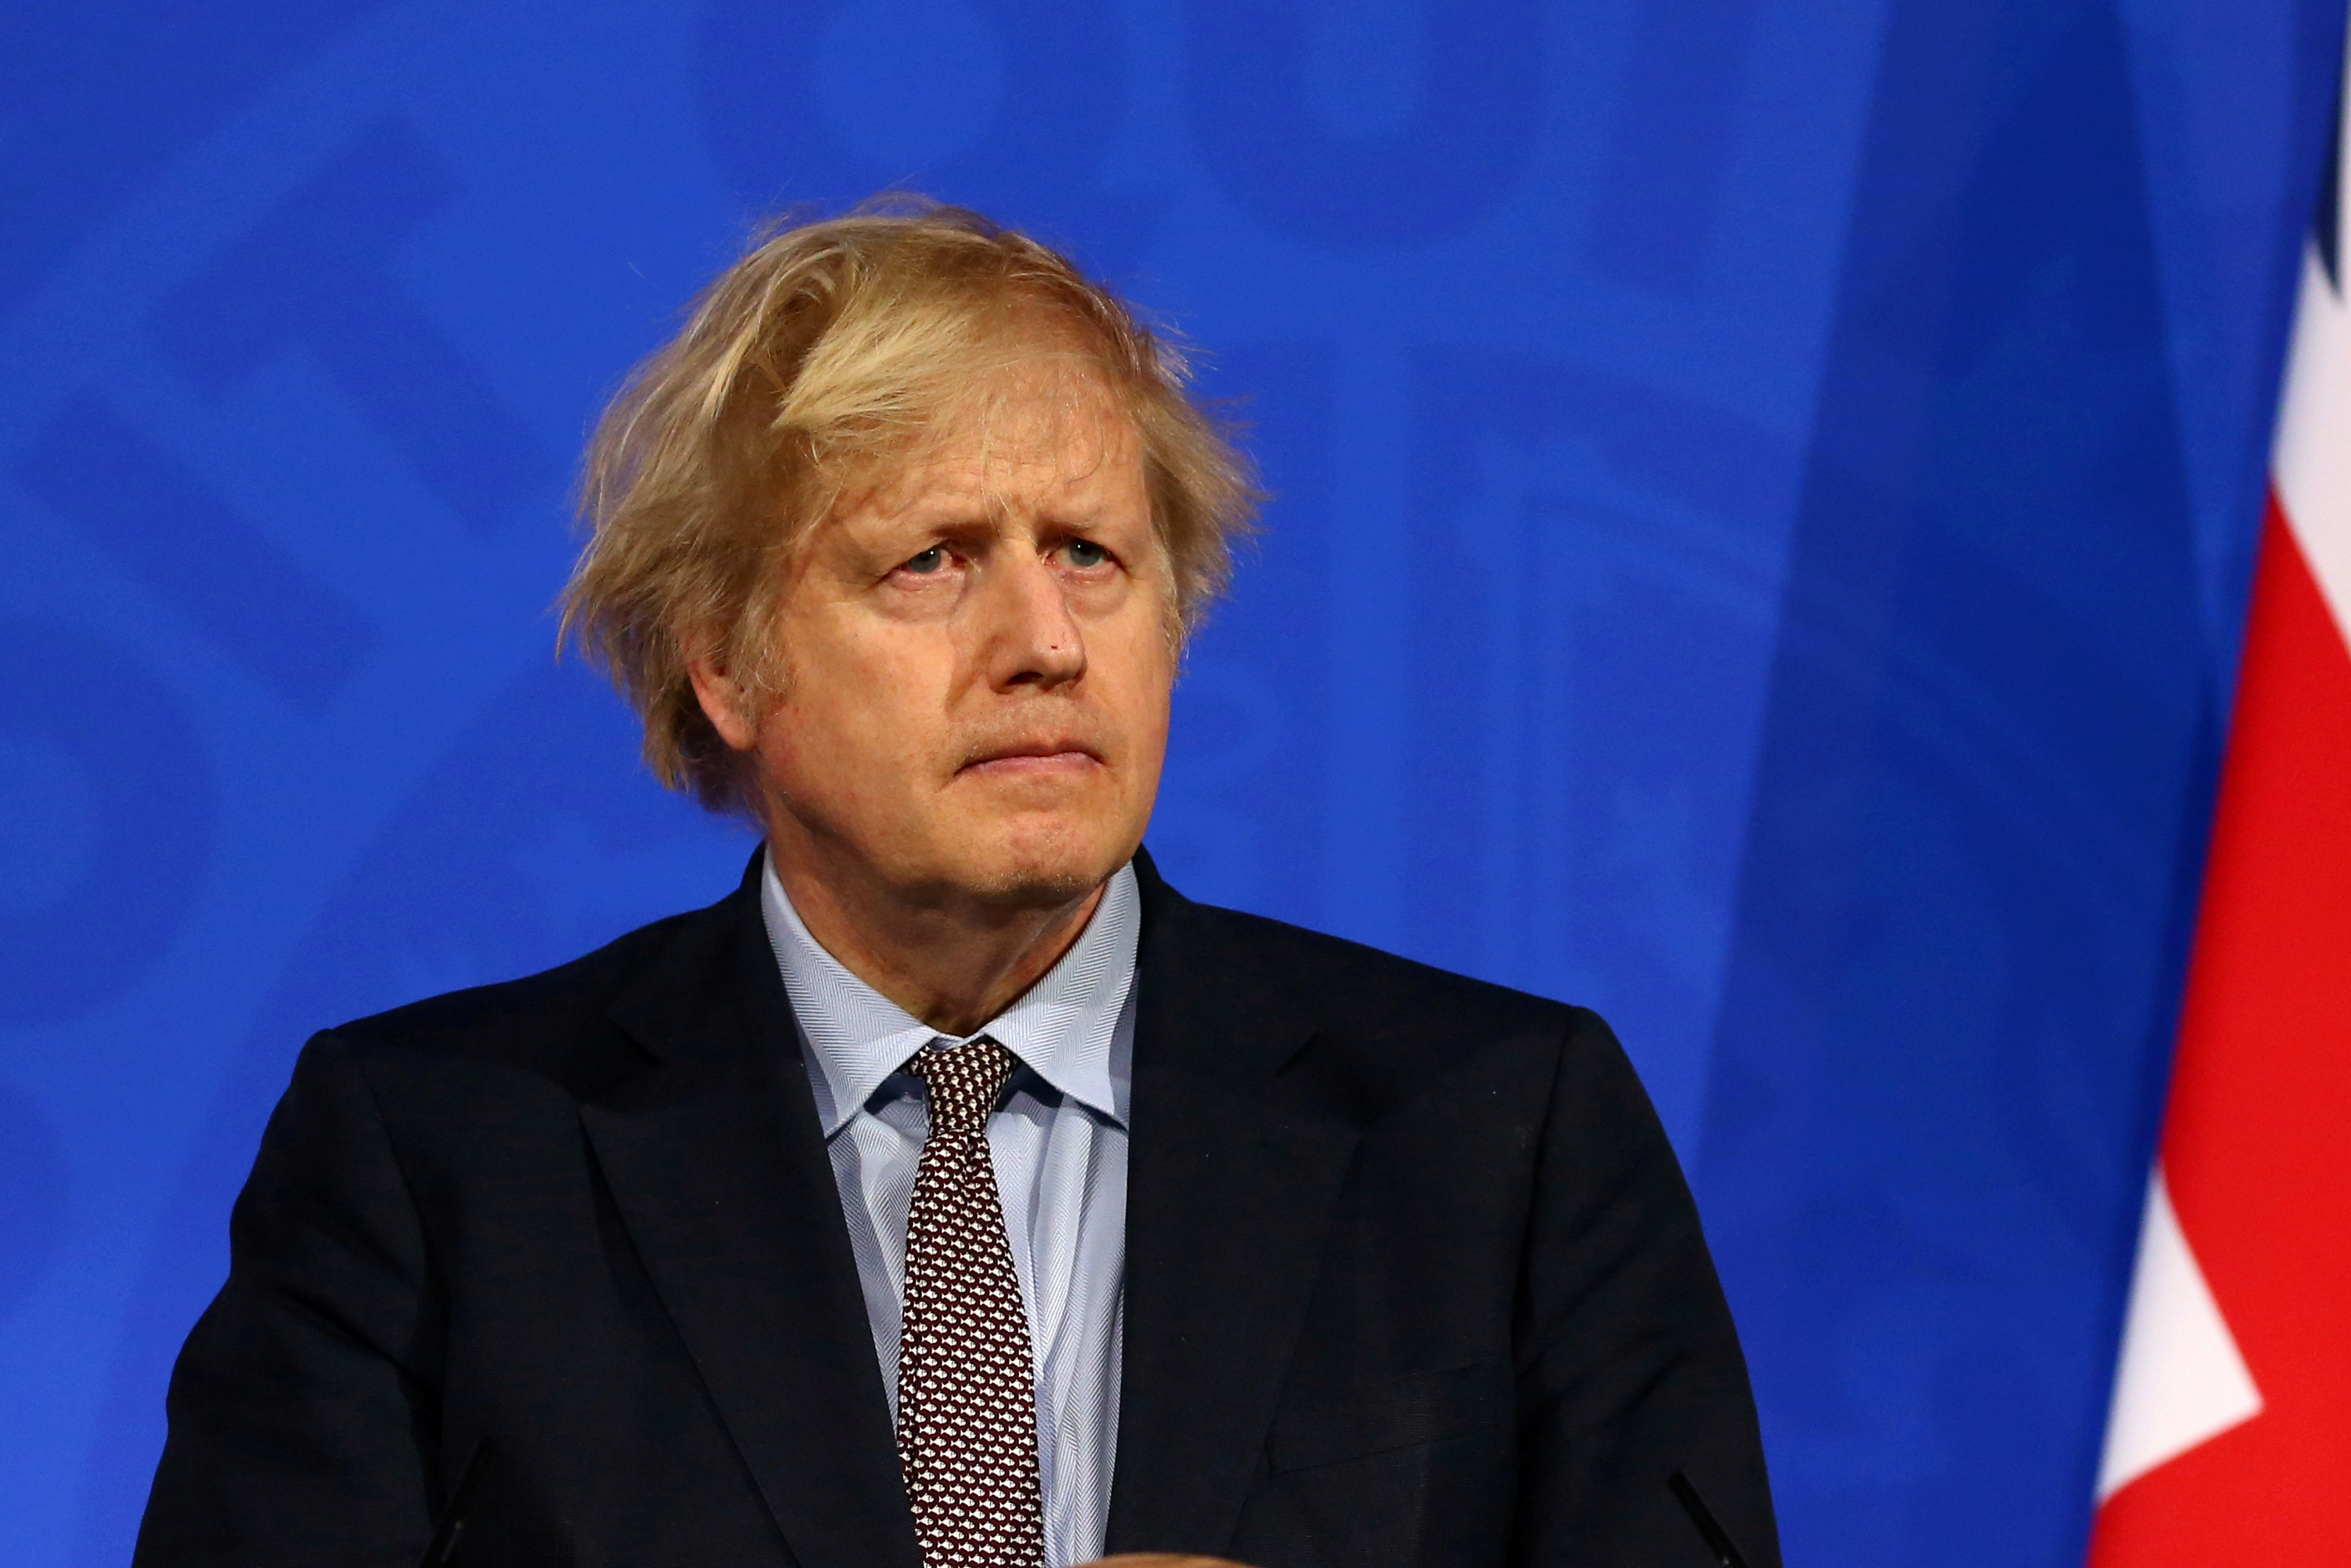 Britain's Prime Minister Boris Johnson holds a news conference on the coronavirus disease (COVID-19) pandemic, in London, Britain March 29, 2021. Hollie Adams/Pool via REUTERS/File Photo